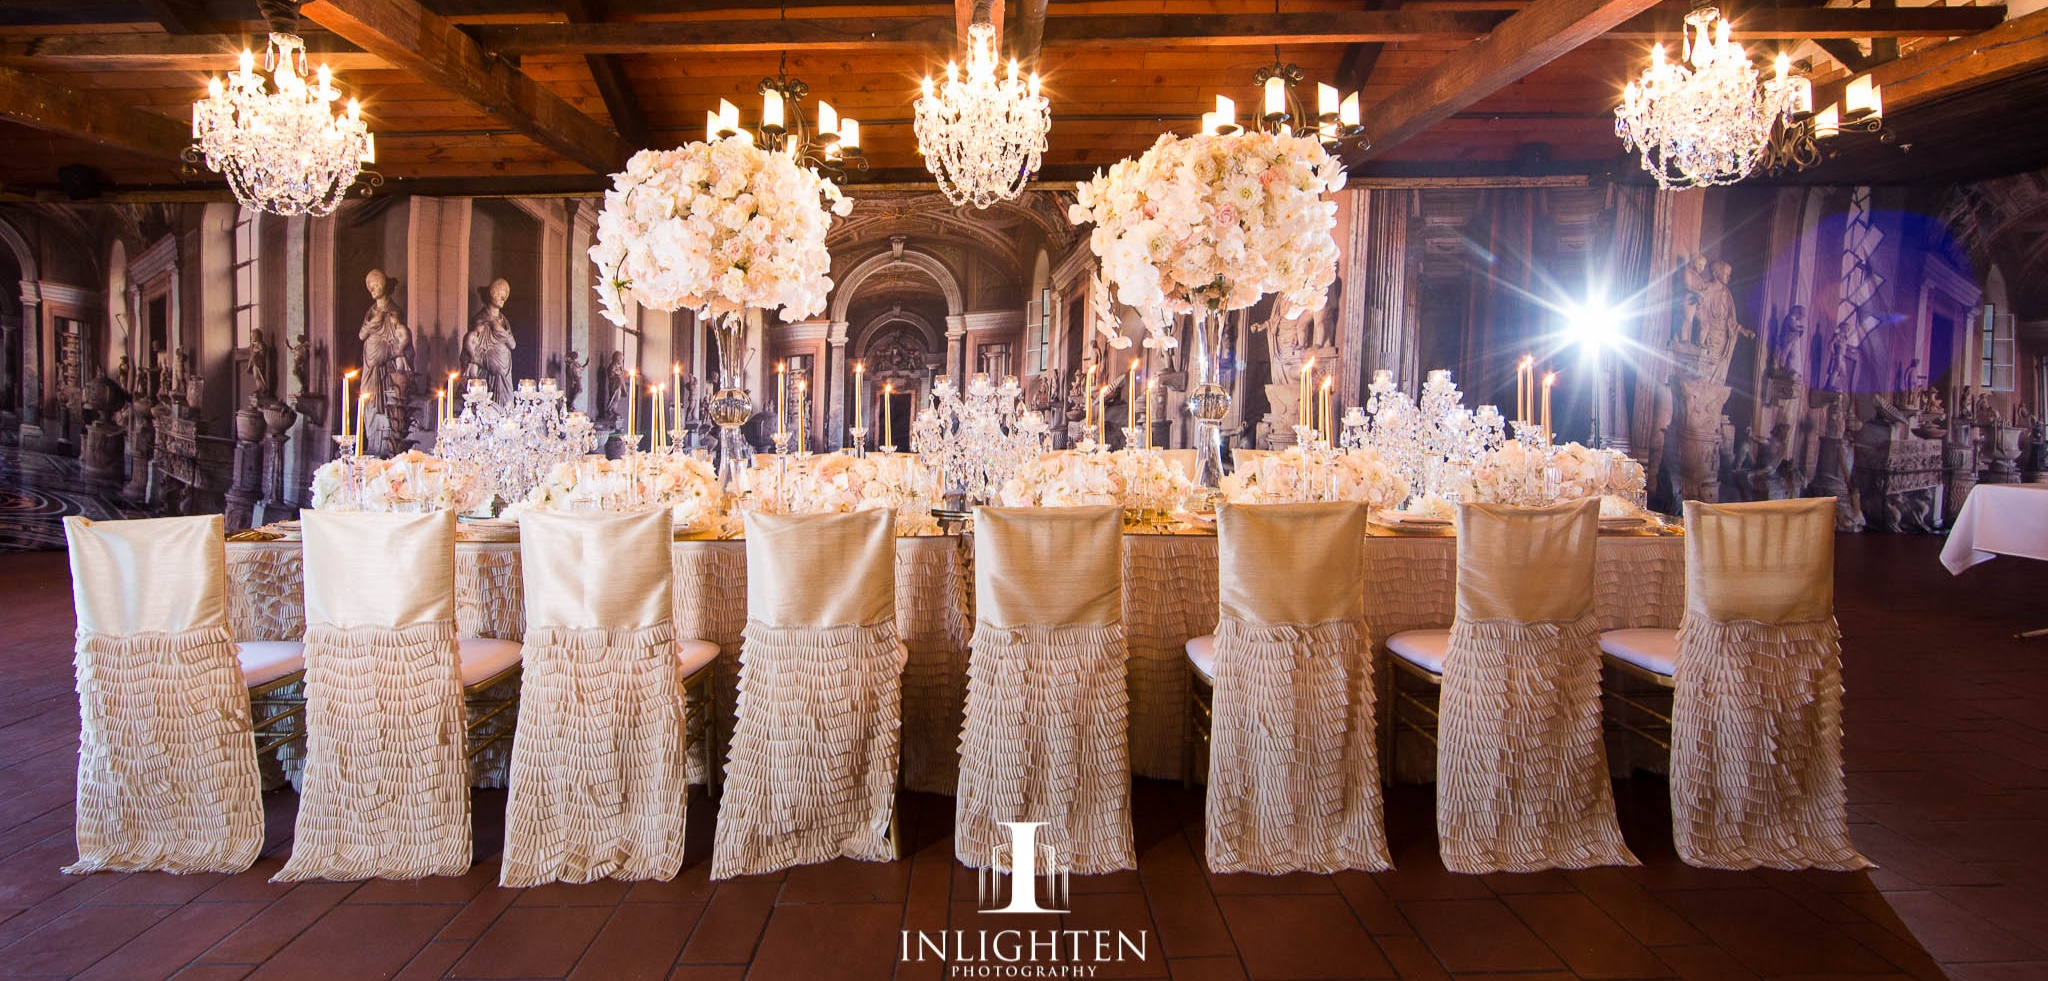 Champagne chaircovers_centrepiece_crystal chandeliers_italian inspired backdrop.jpg